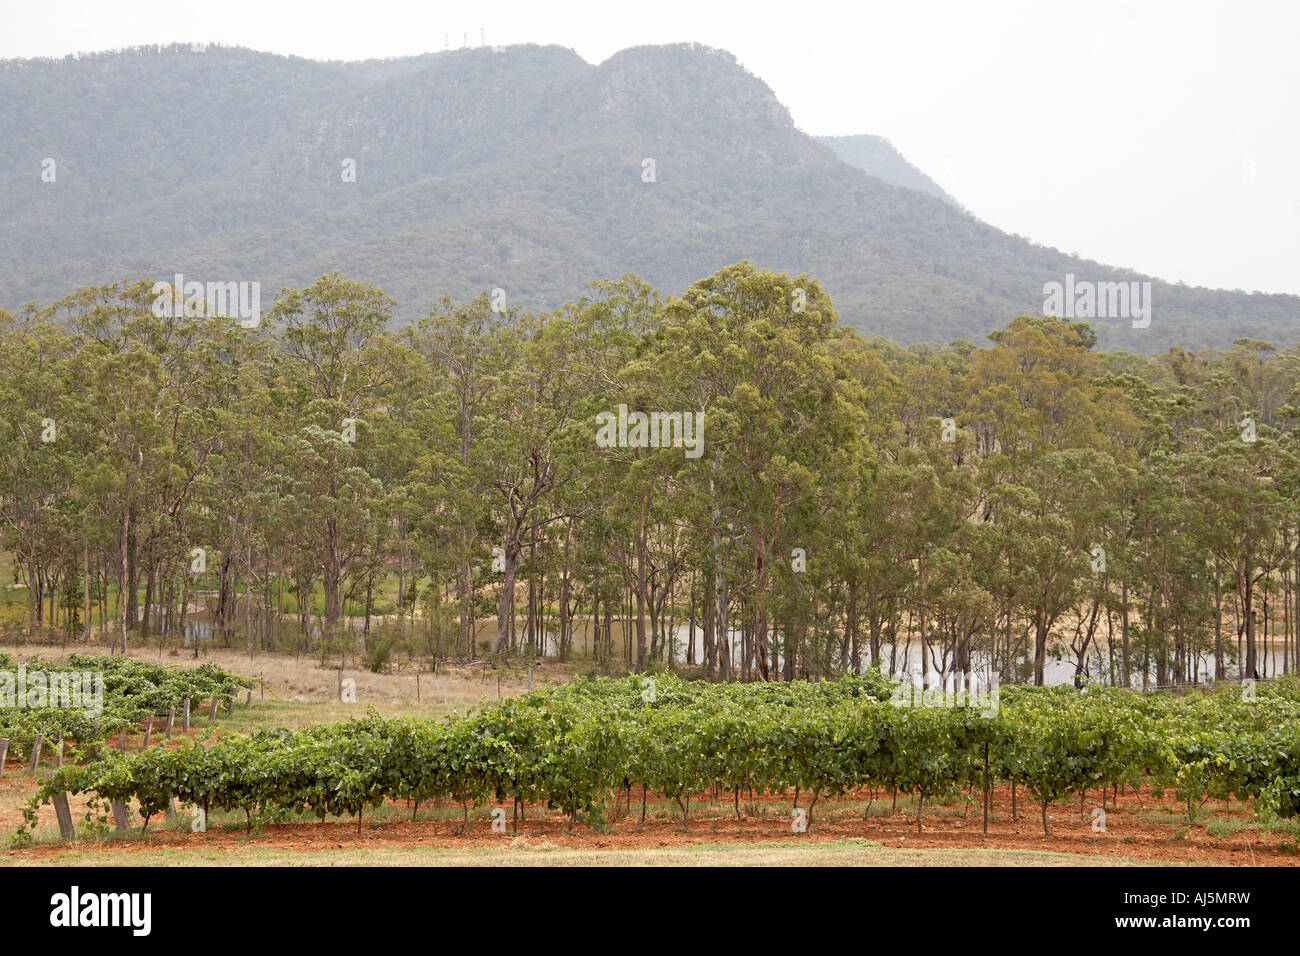 Mountains and gum trees near Broke in Hunter Valley wine growing area of New South Wales NSW Australia Stock Photo